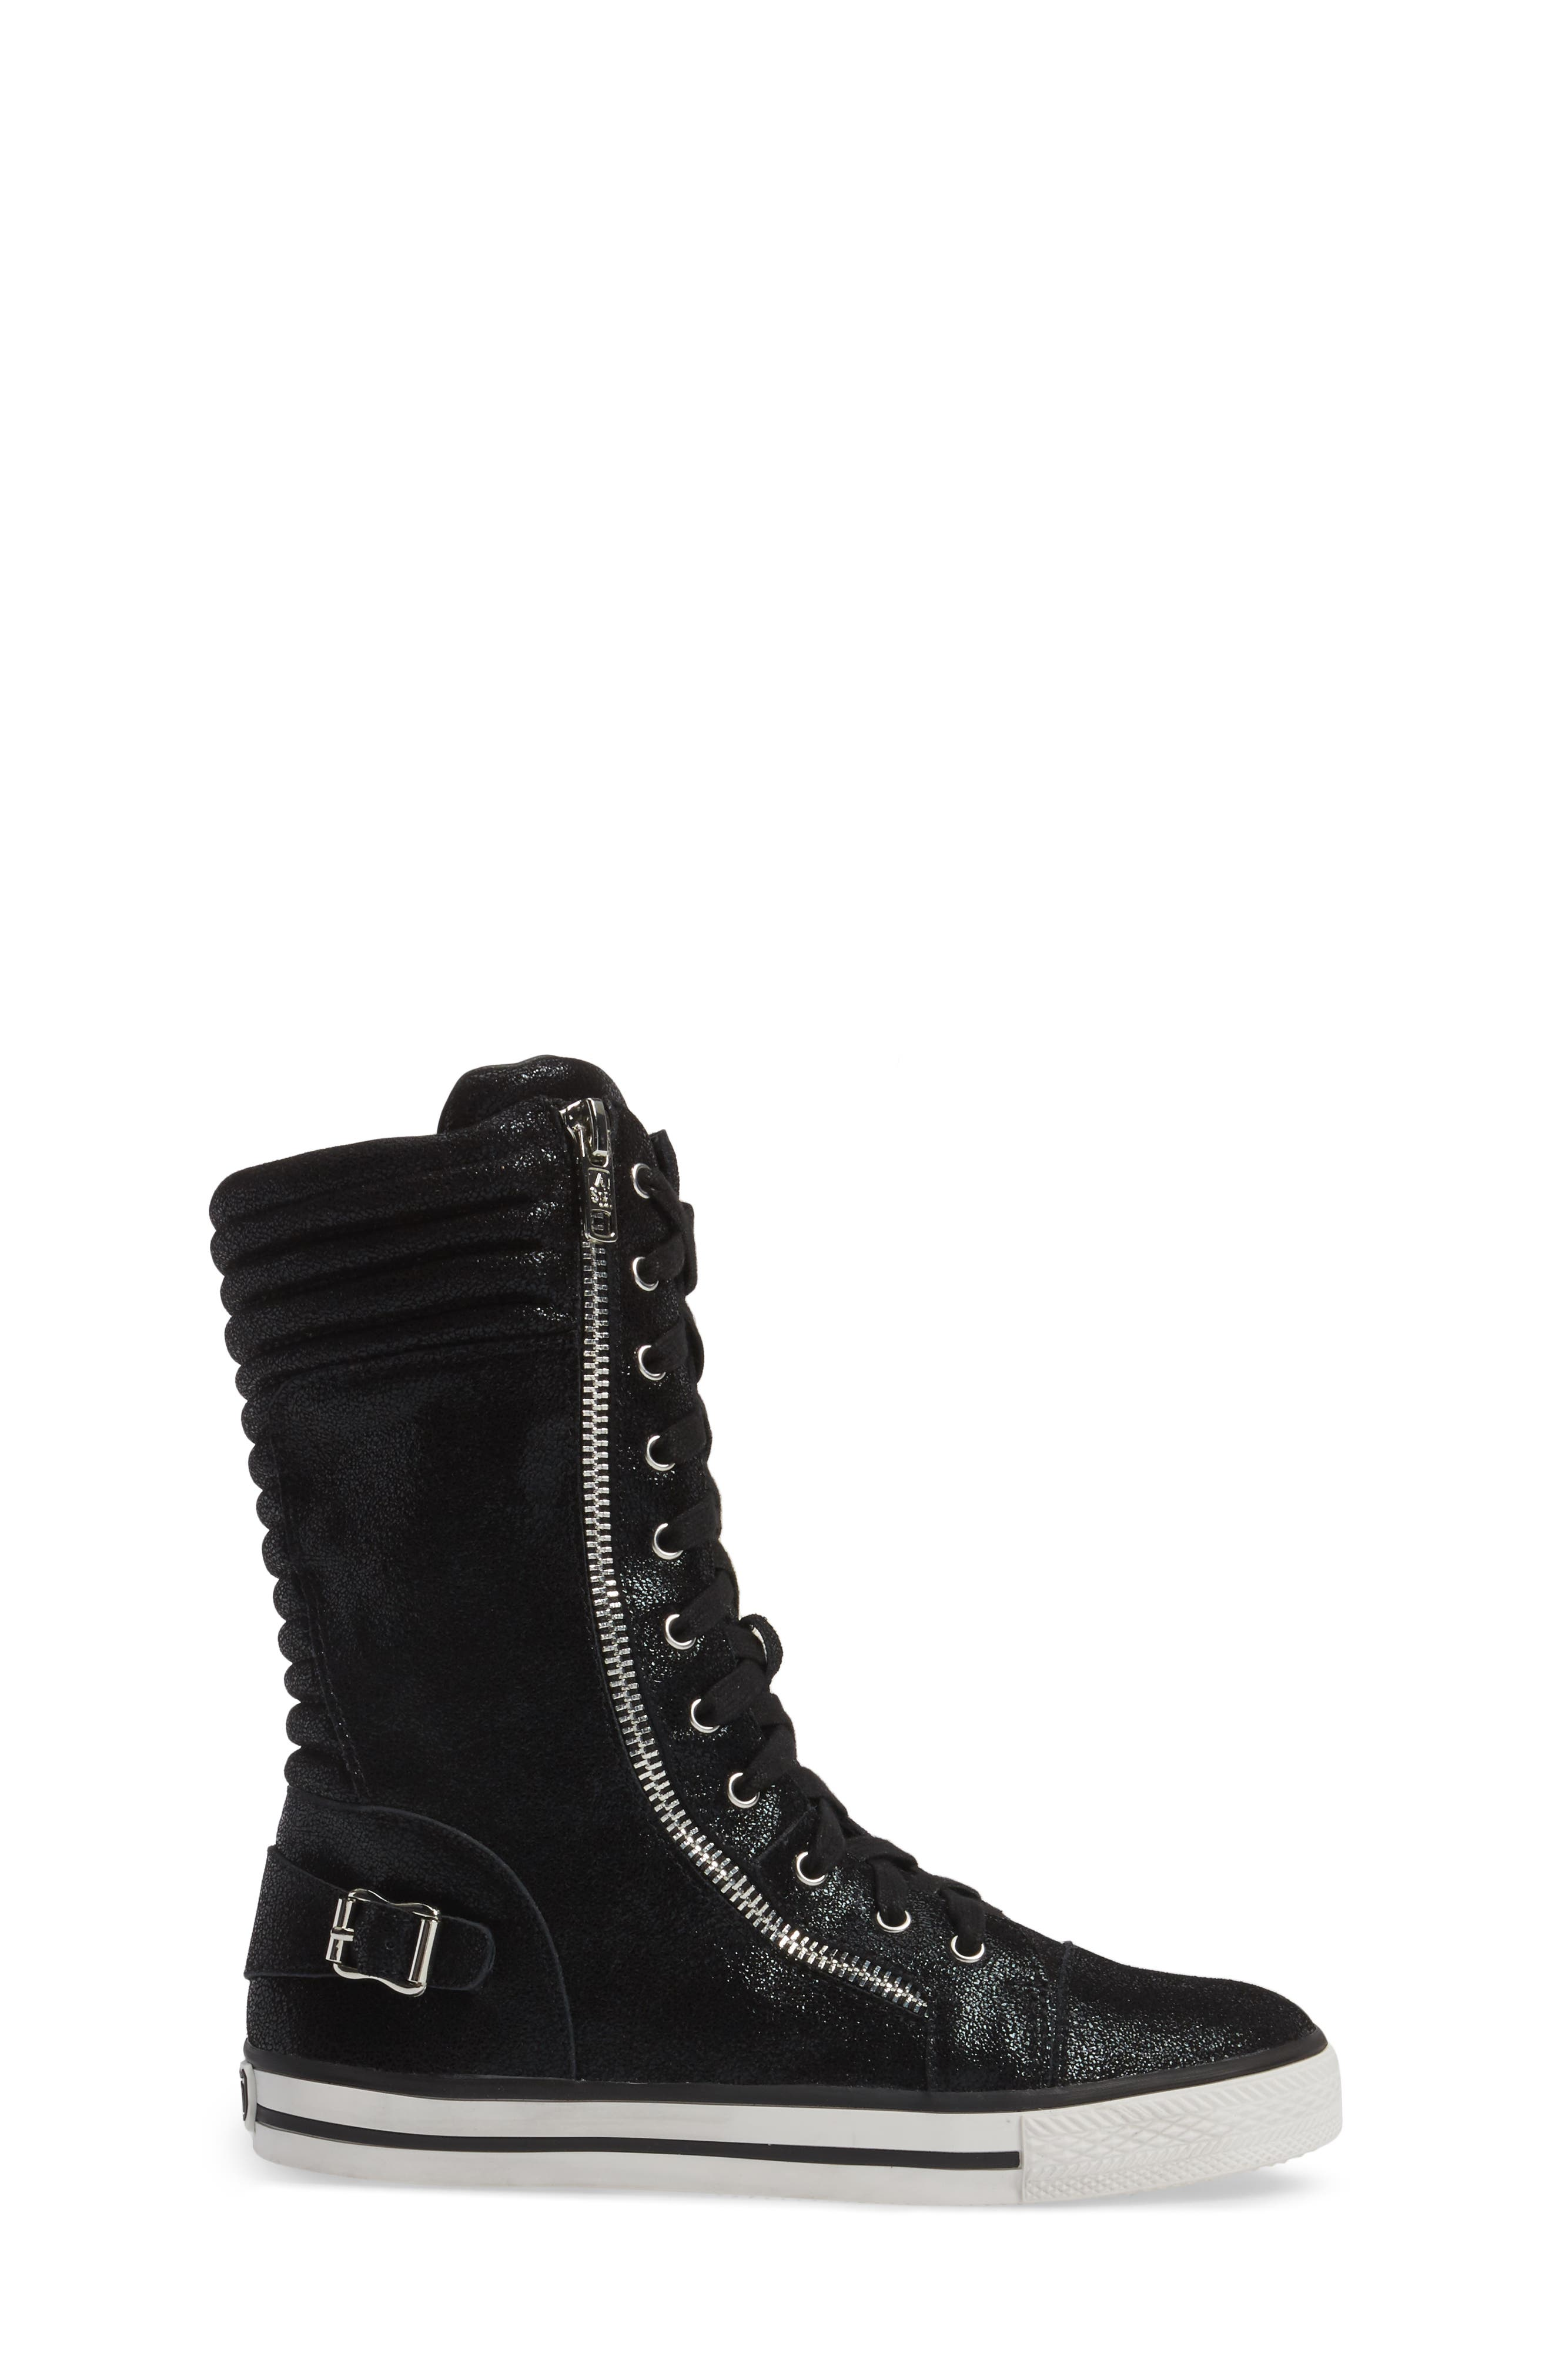 Vava Cate Ultra High Top Sneaker,                             Alternate thumbnail 3, color,                             001